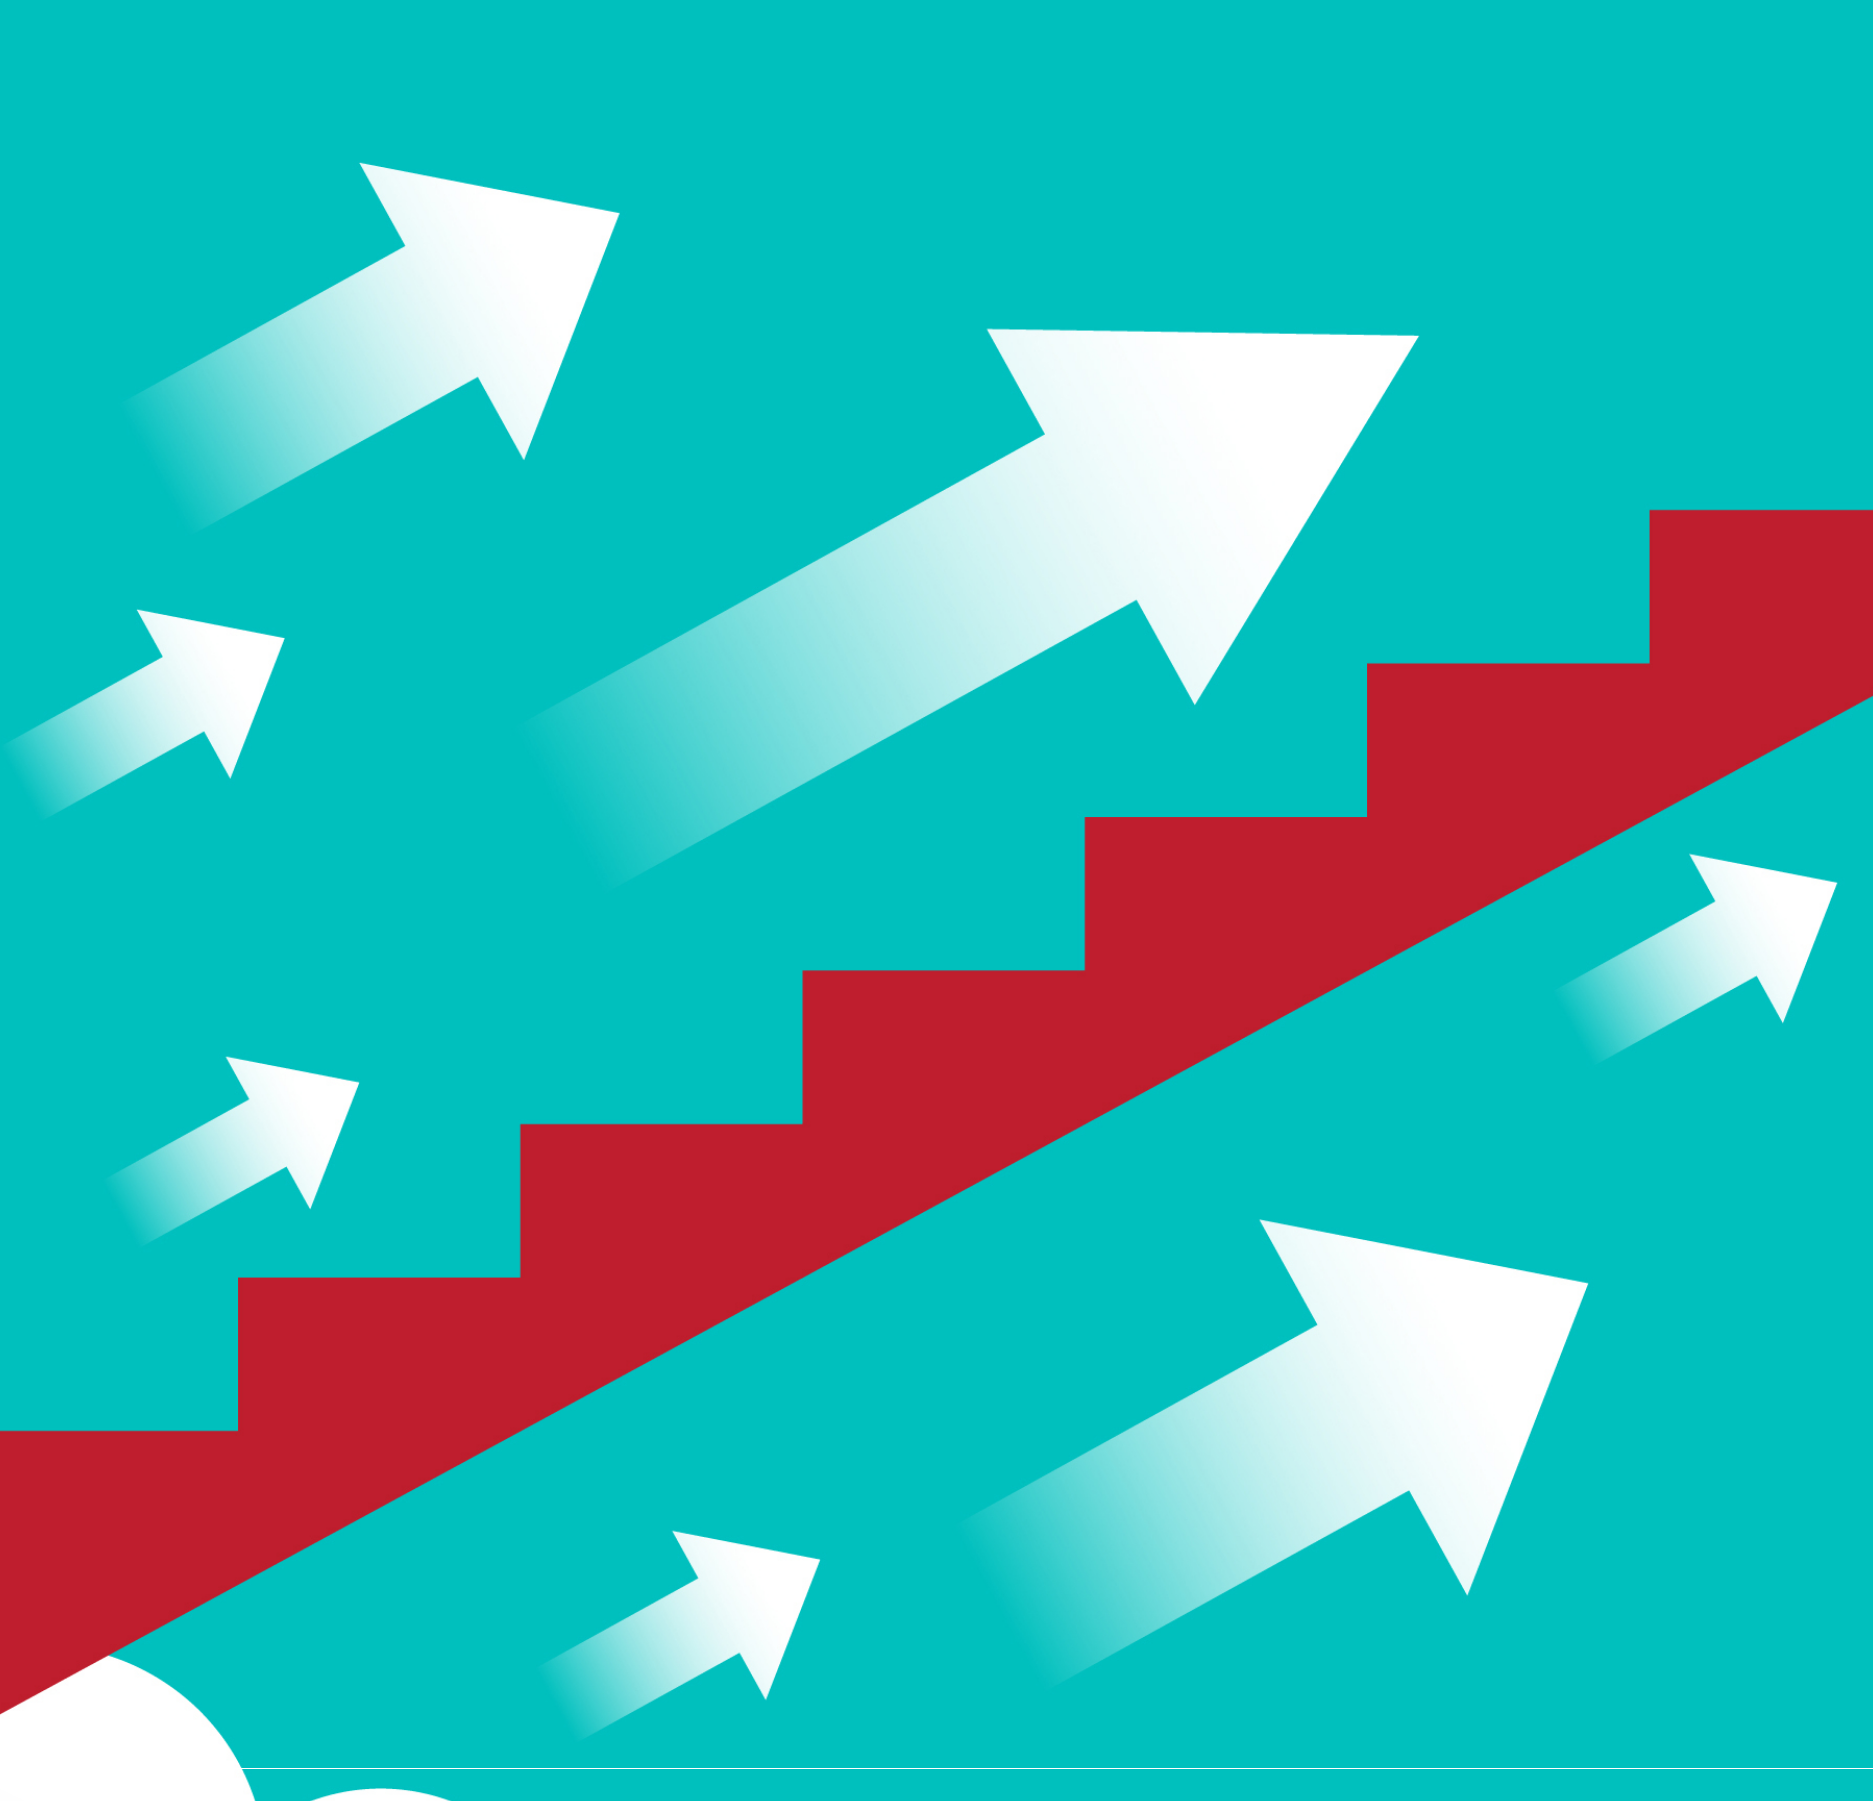 Career progression: What does it take to rise to the top in the legal profession?